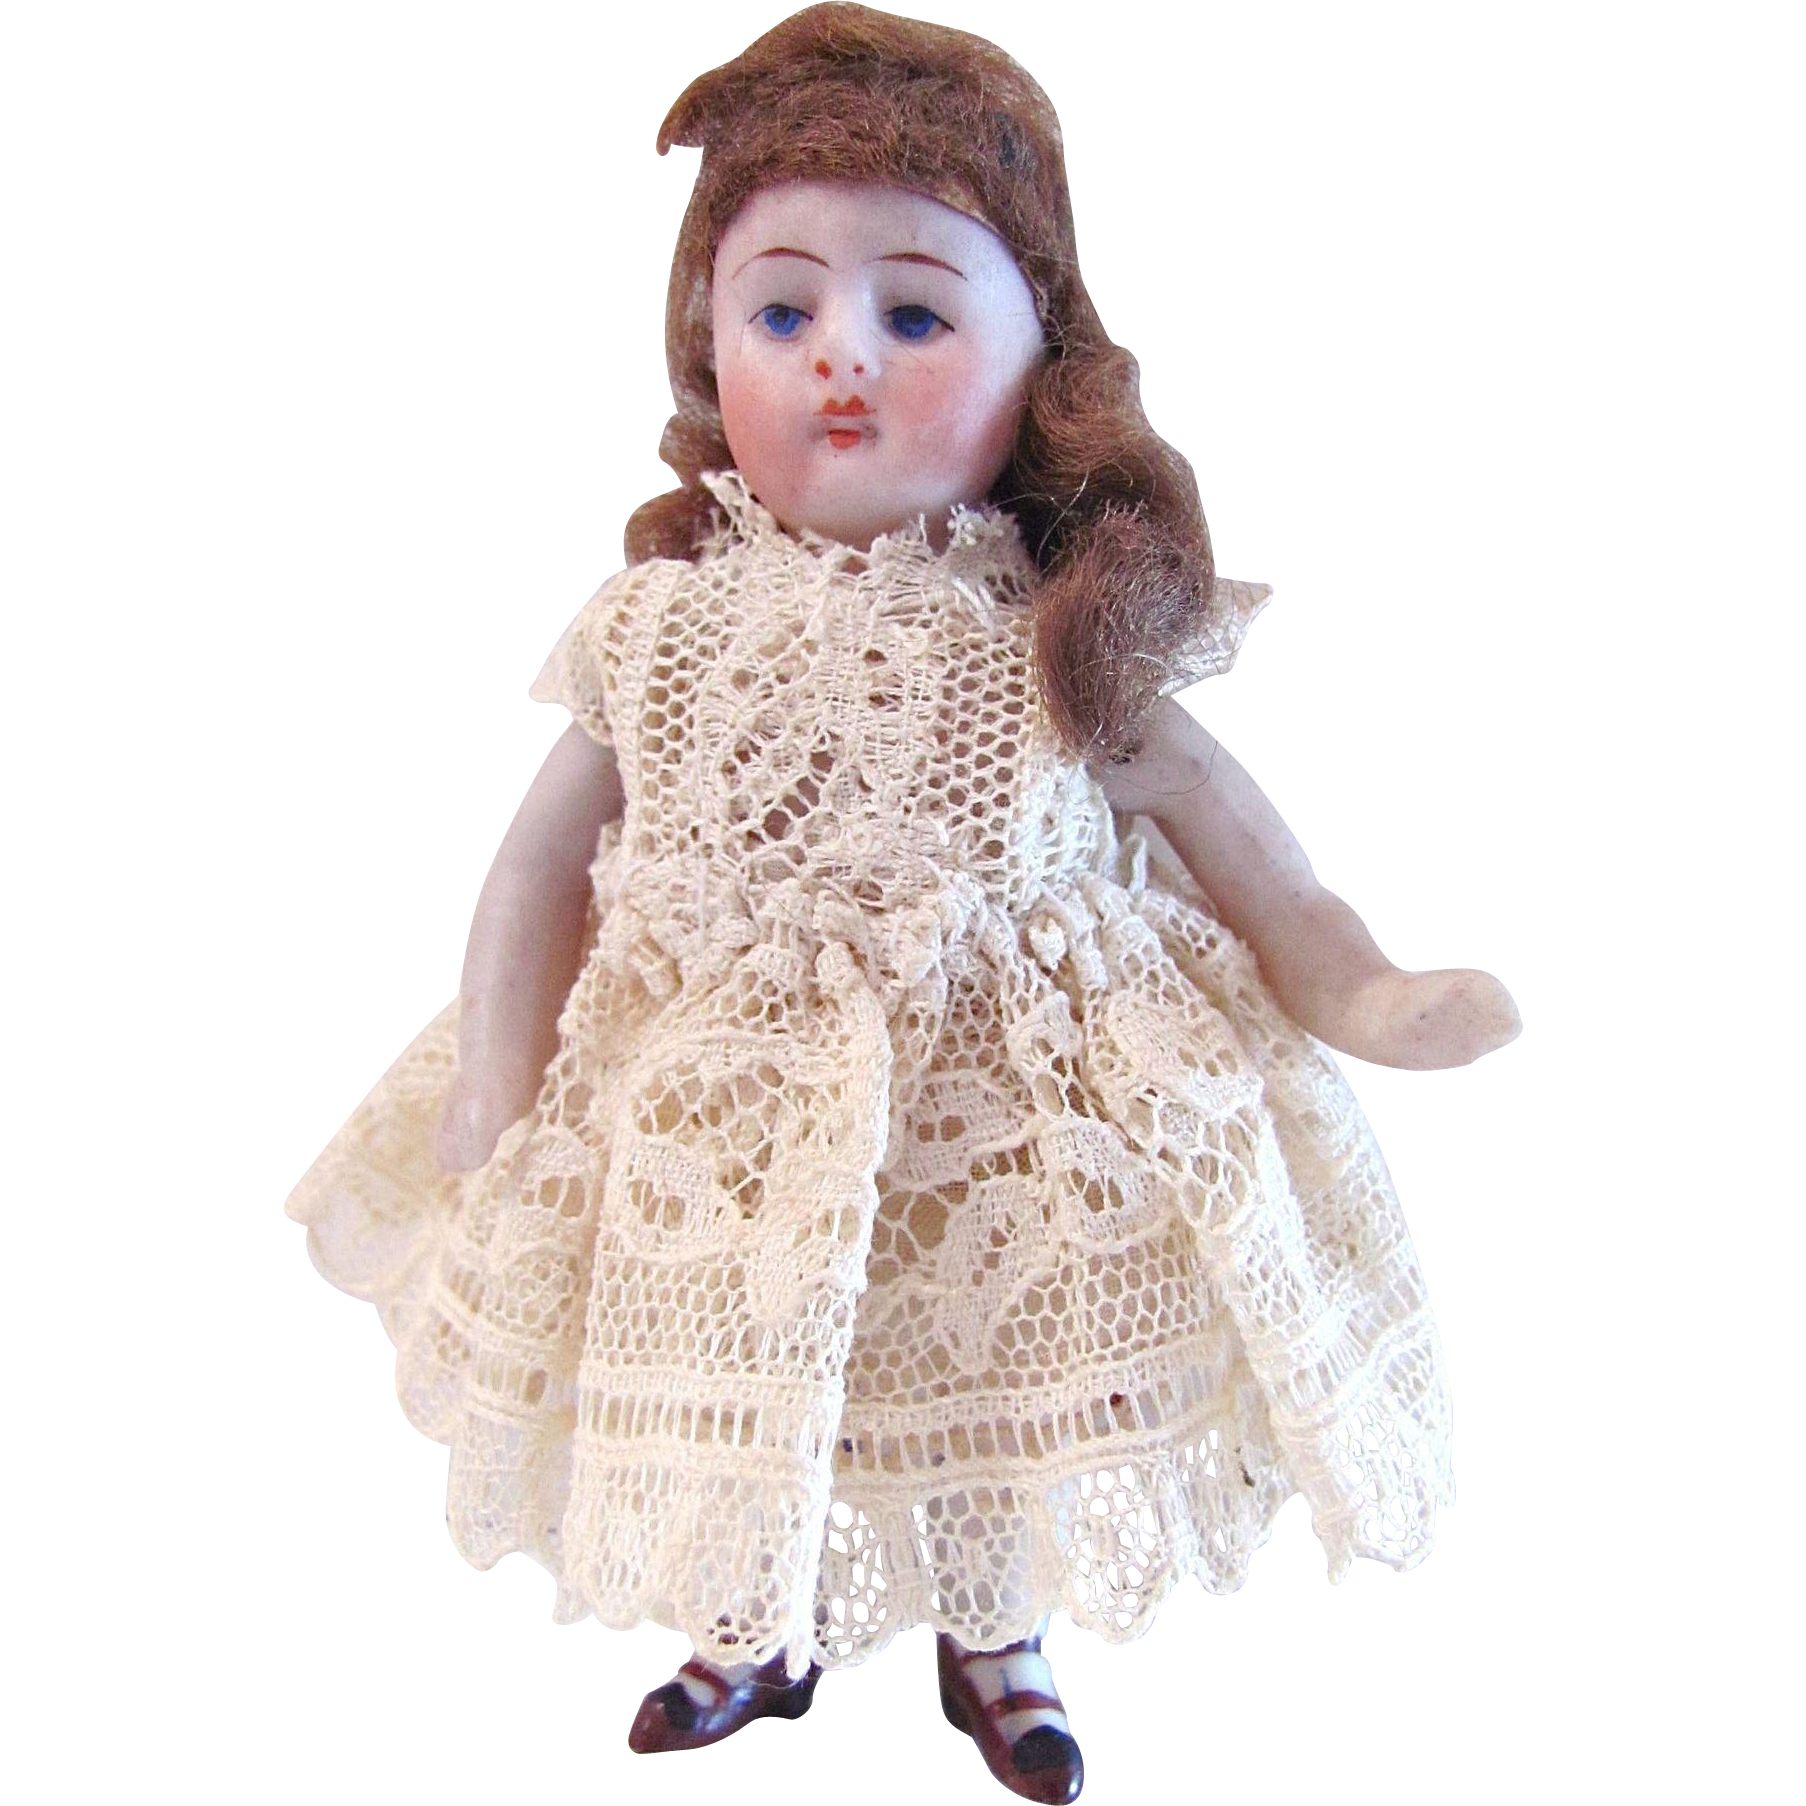 Antique German All-Bisque Dollhouse Doll, Miniature Doll Dressed in Lace